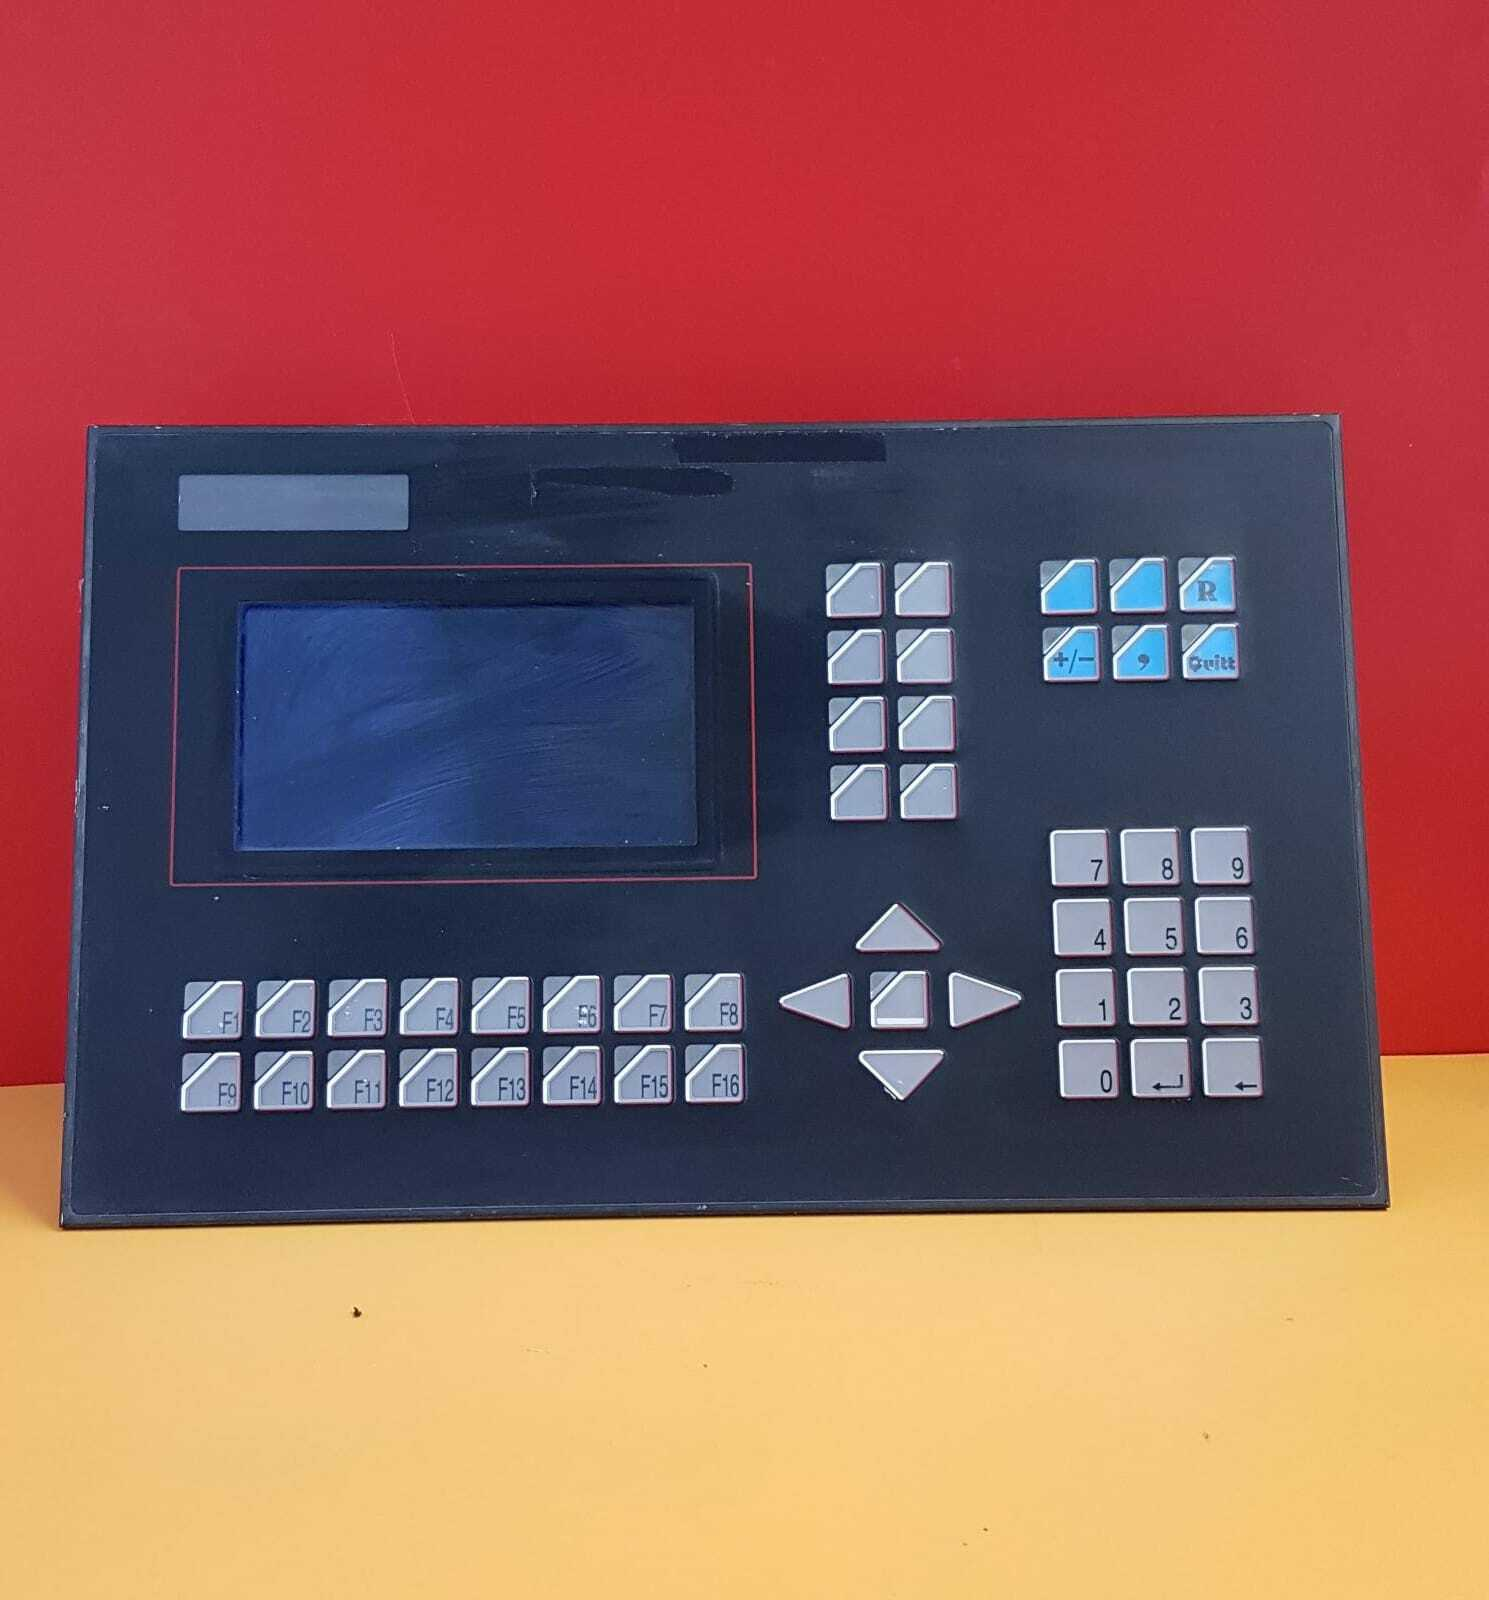 B&R AUTOMATION 4D1165.00-590 REV C0 OPERATOR TOUCH PANEL HMI